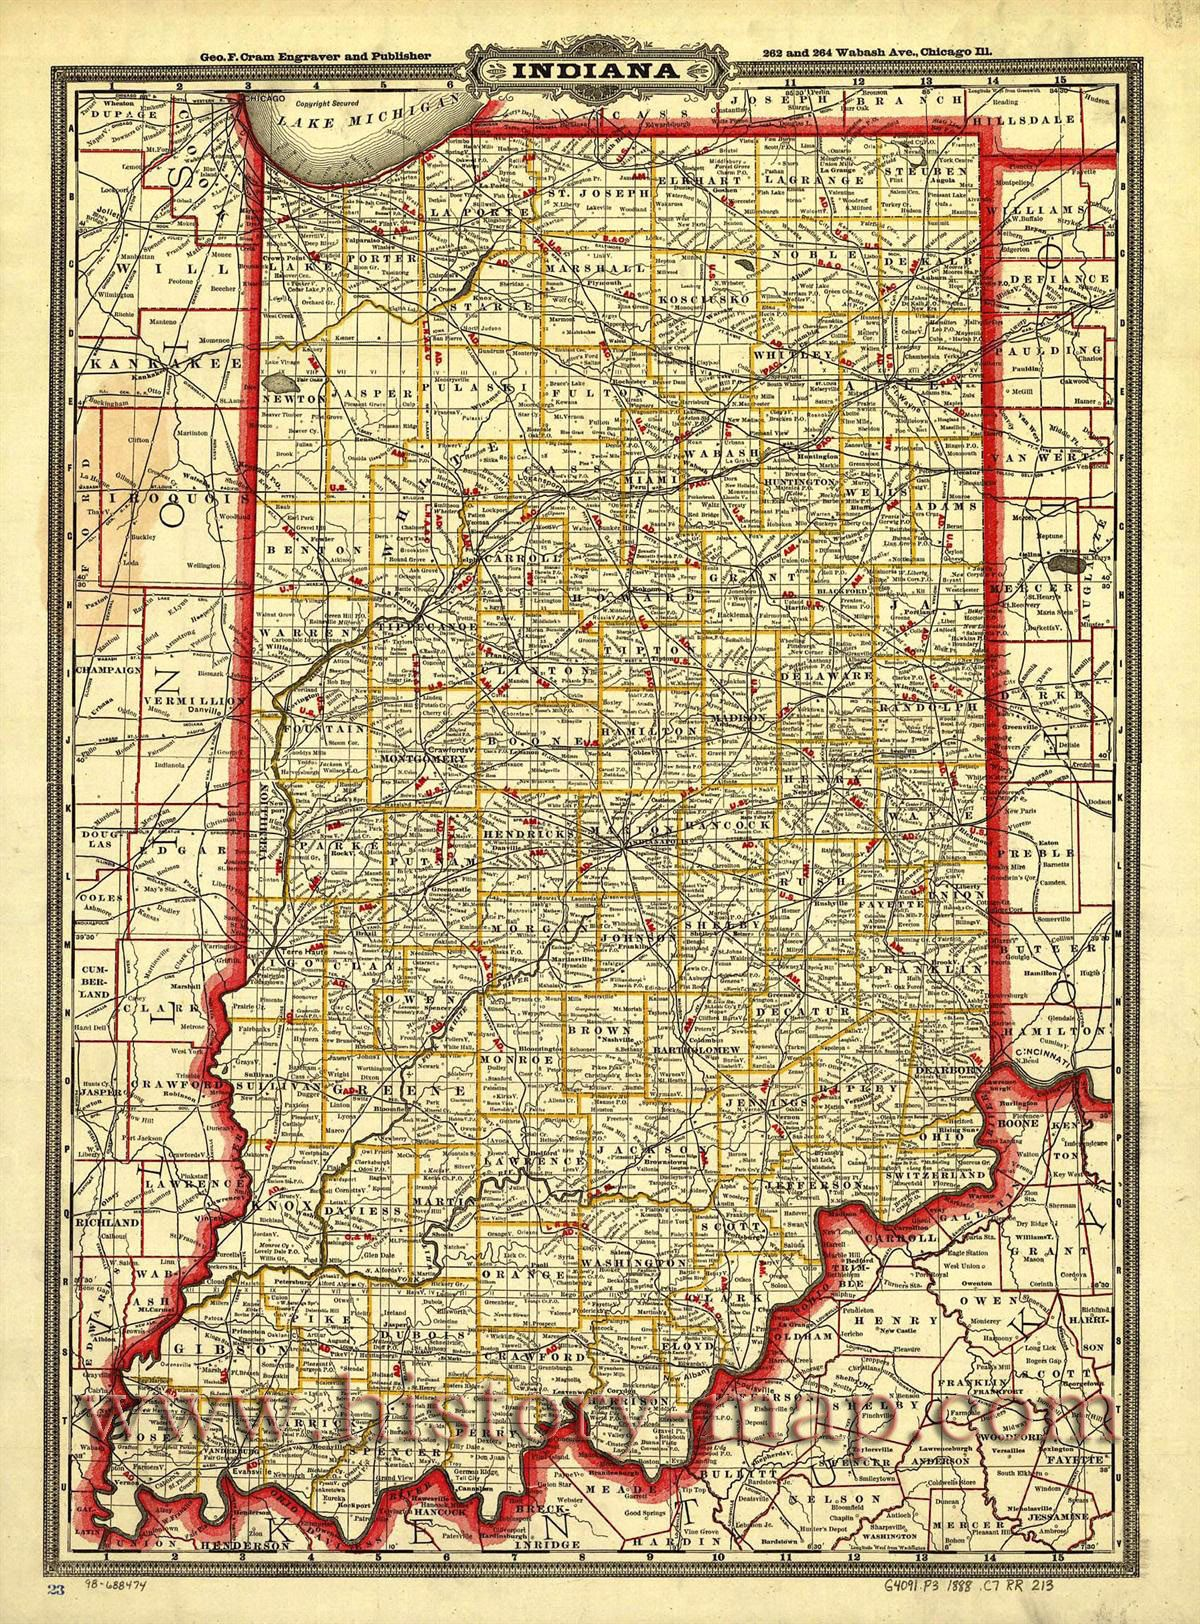 Township And Railroad Map Of Indiana Taken In Shows Railroad - 1888 us map